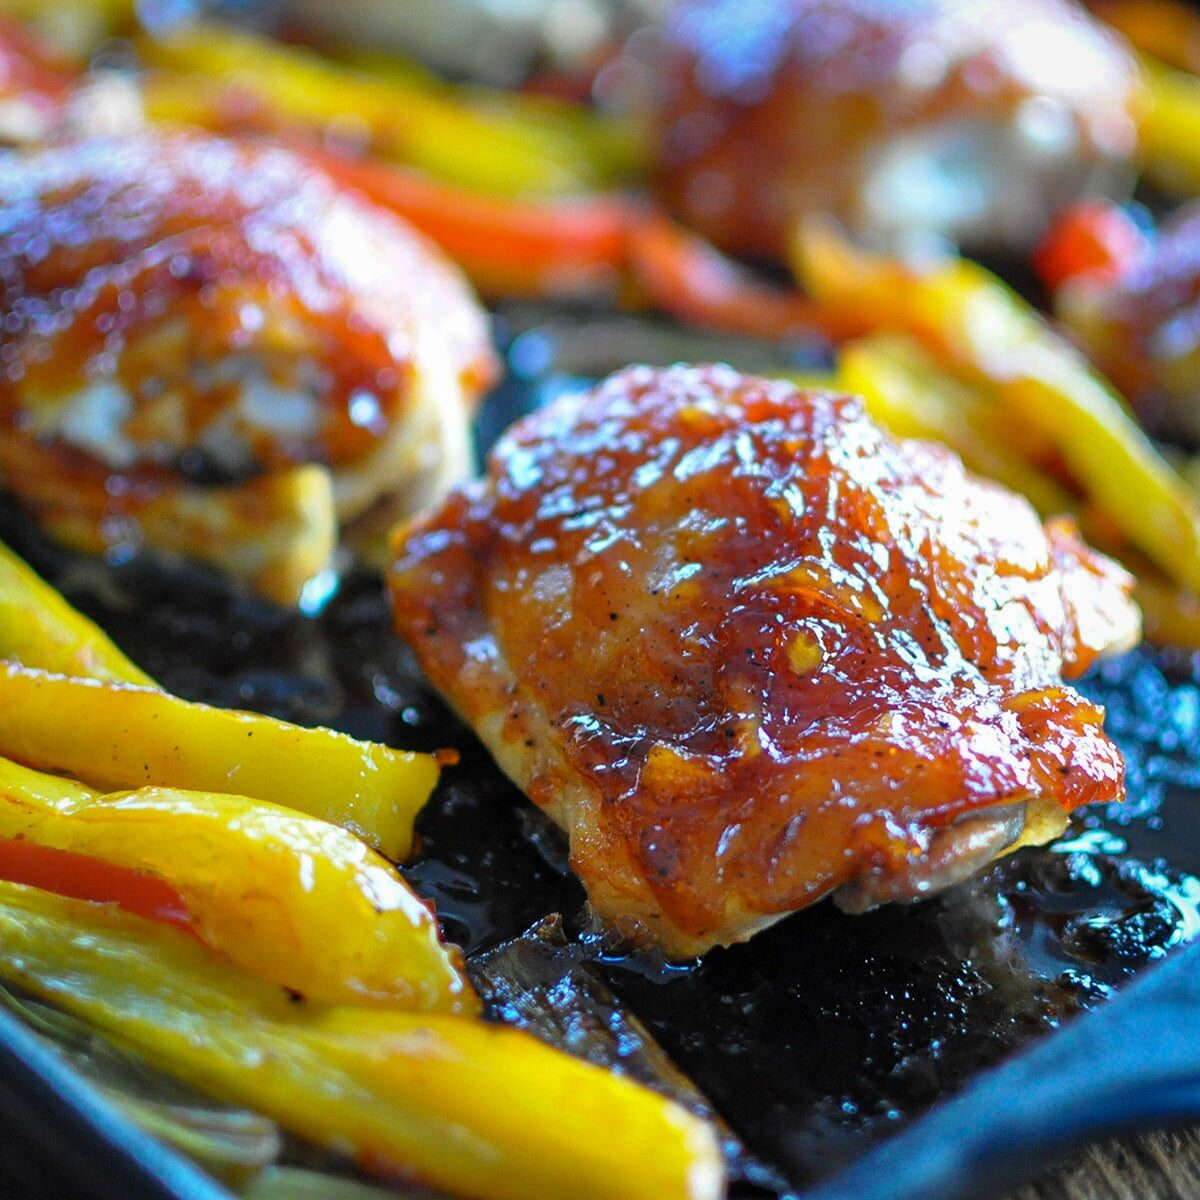 a close up picture of a baked chicken thigh